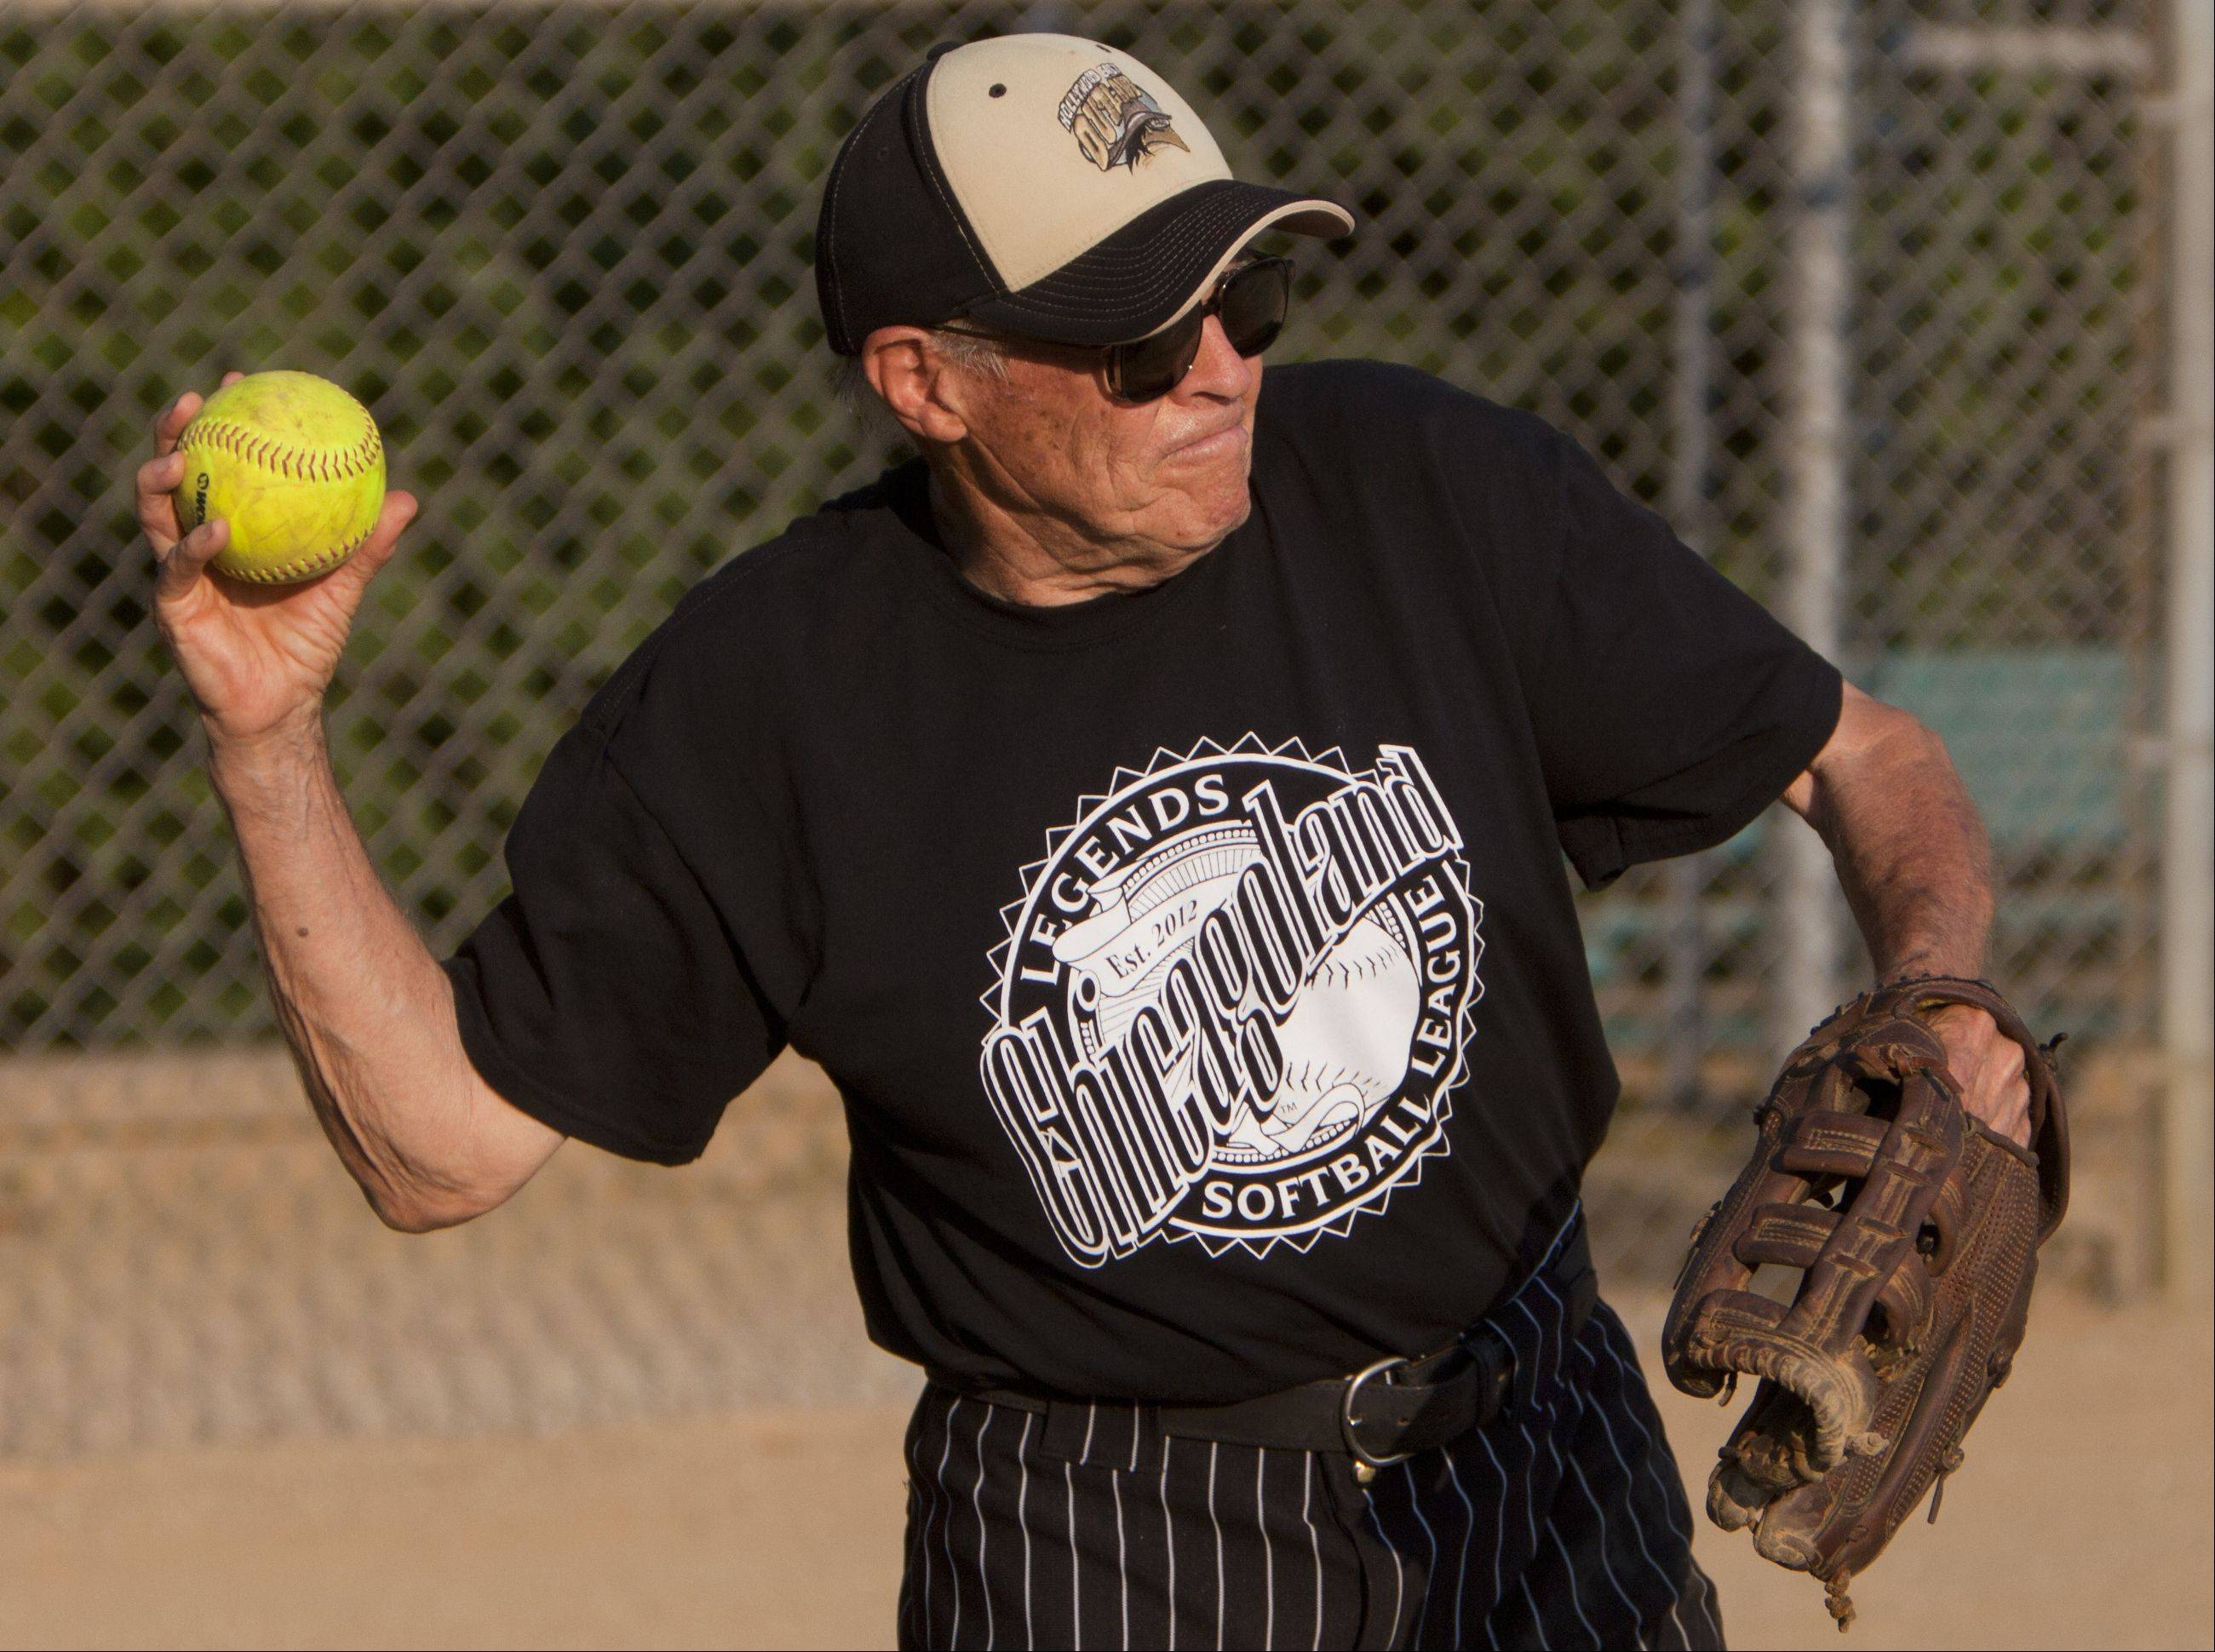 Ken Black, 82, the oldest member of the Chicagoland Legends Softball League throws the ball back to the pitcher.